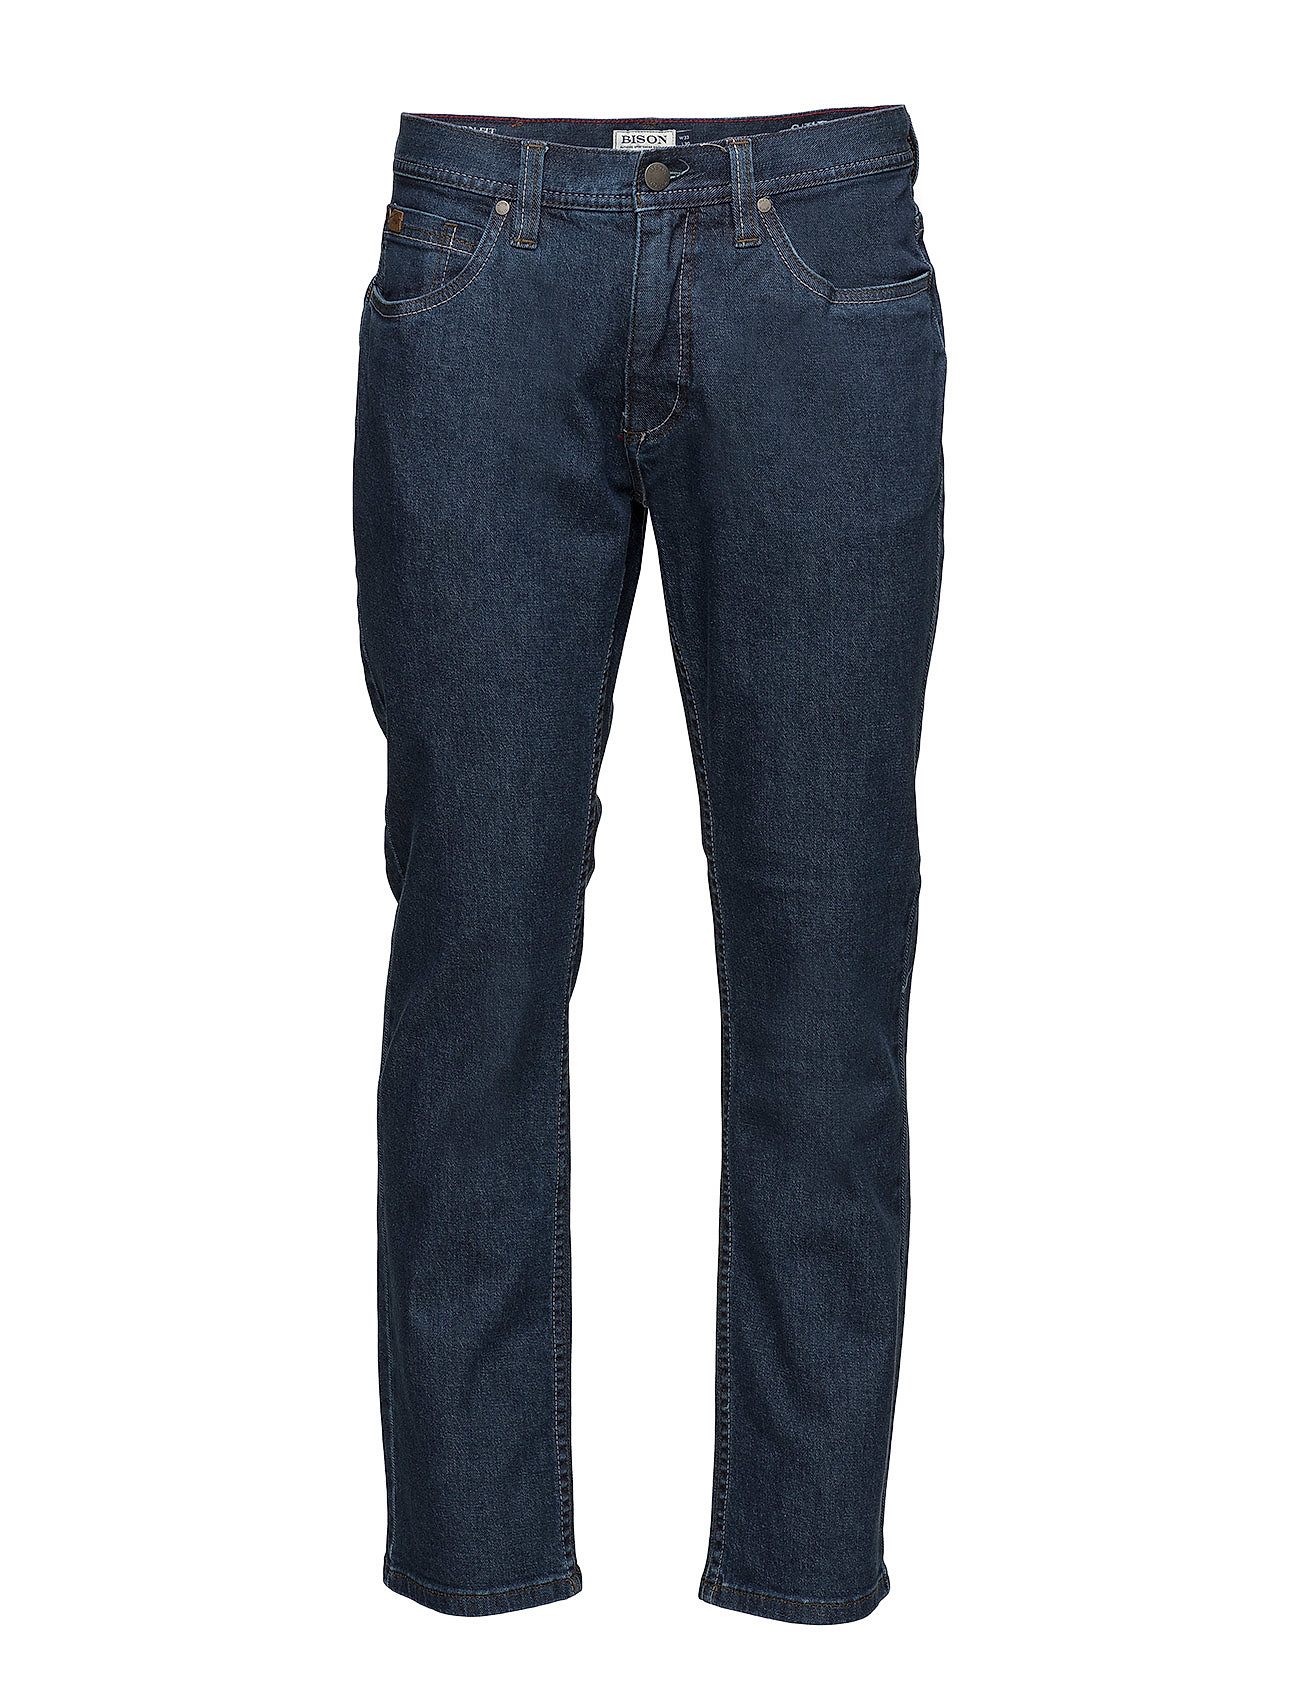 Bison 5 pocket jeans - Dark night - INDIGO BLUE